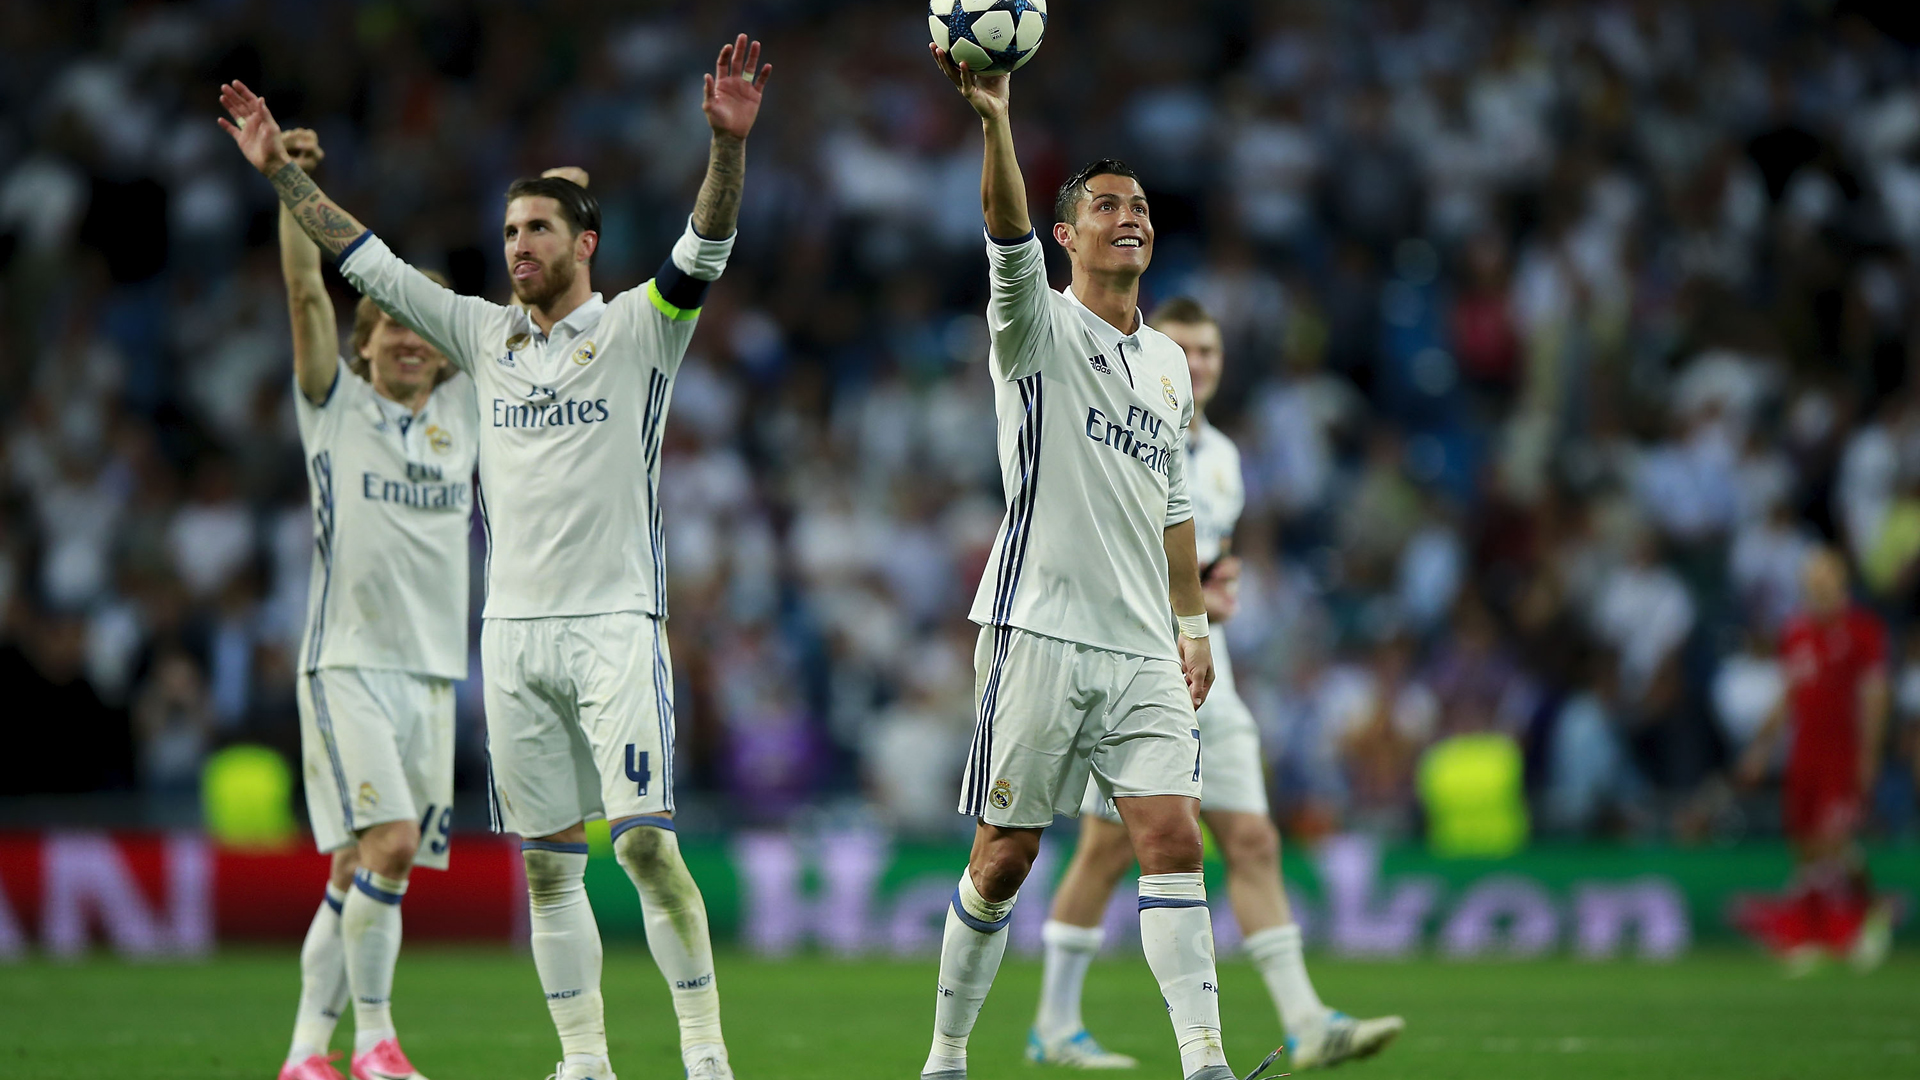 Ronaldo hat trick puts Real Madrid into Champions League semis